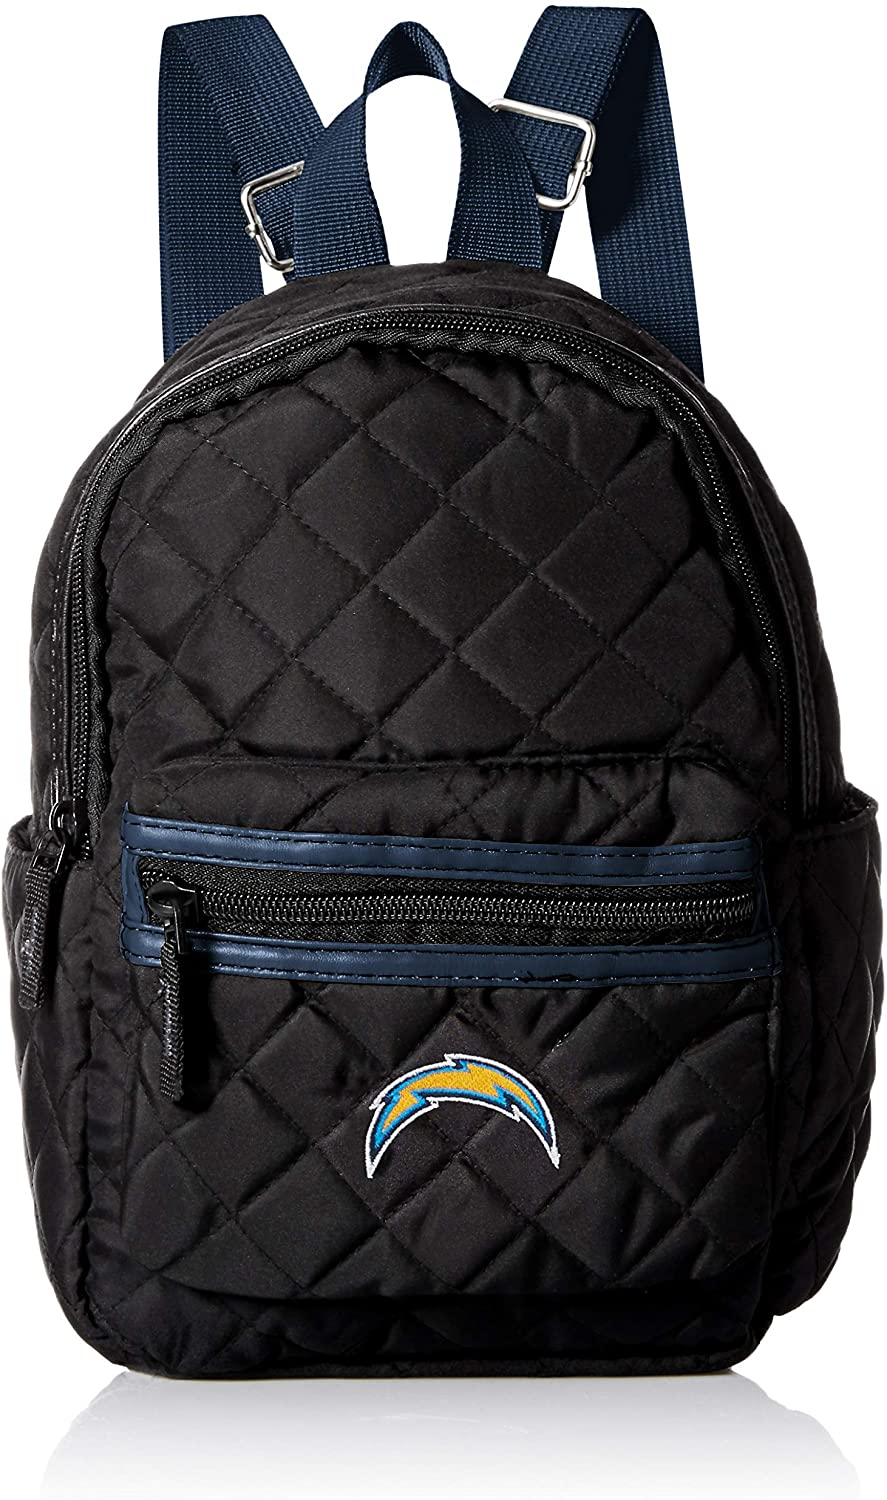 FOCO NFL WomensBlack Quilted Mini Backpack